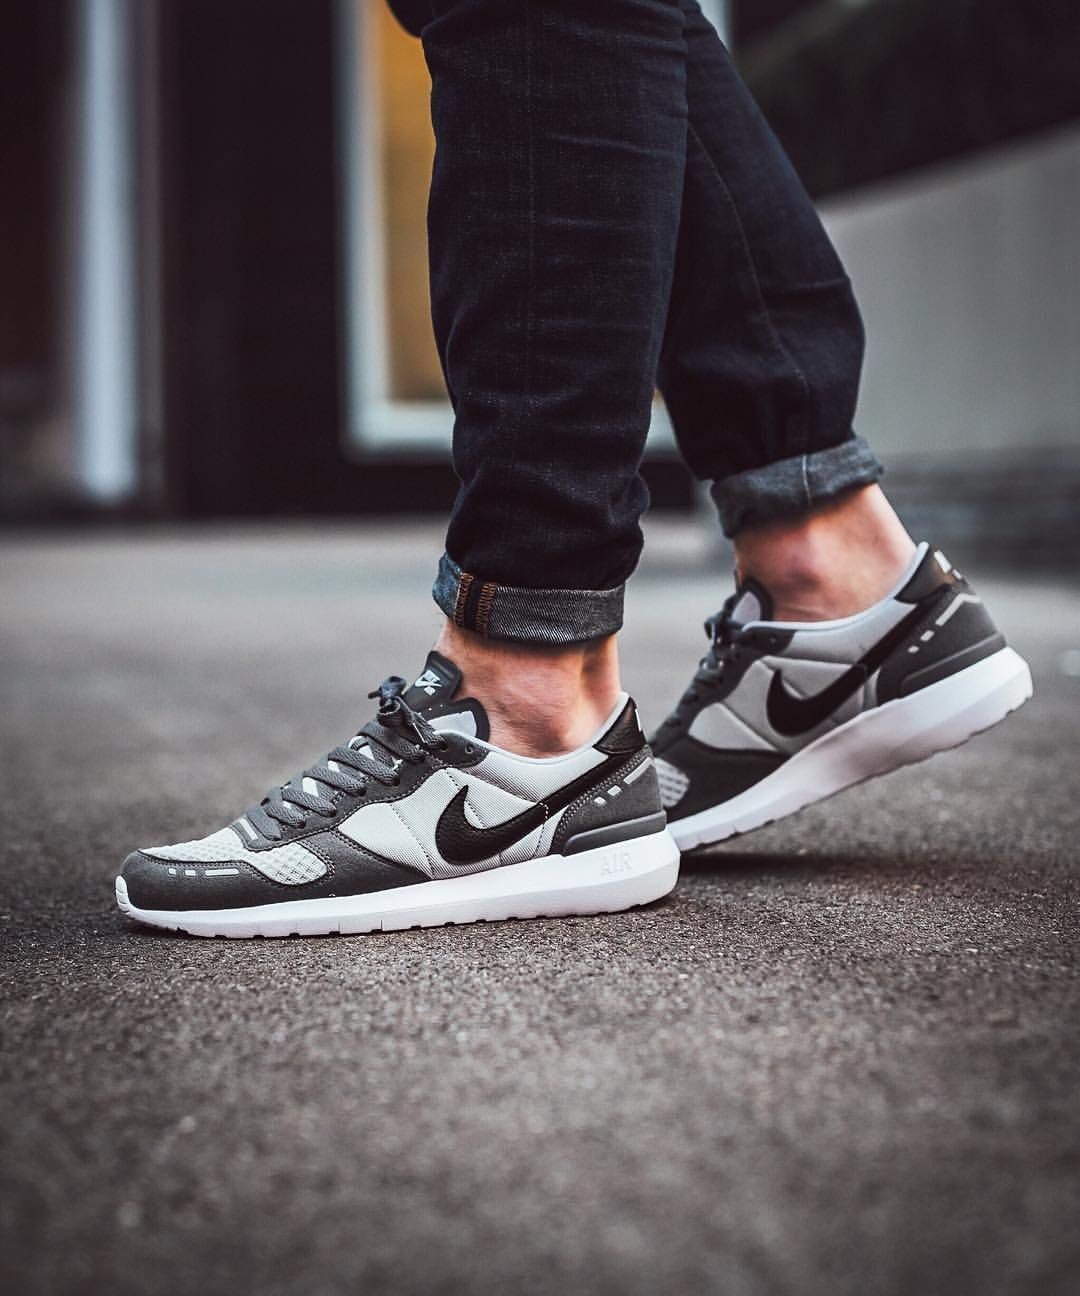 online store 9cc20 f89d5 just in 🔘 Nike Air Vortex  17 - Wolf Grey Black-Dark Grey-White available  in-store and online  titoloshop Berne   Zurich ⬆ link in bio.